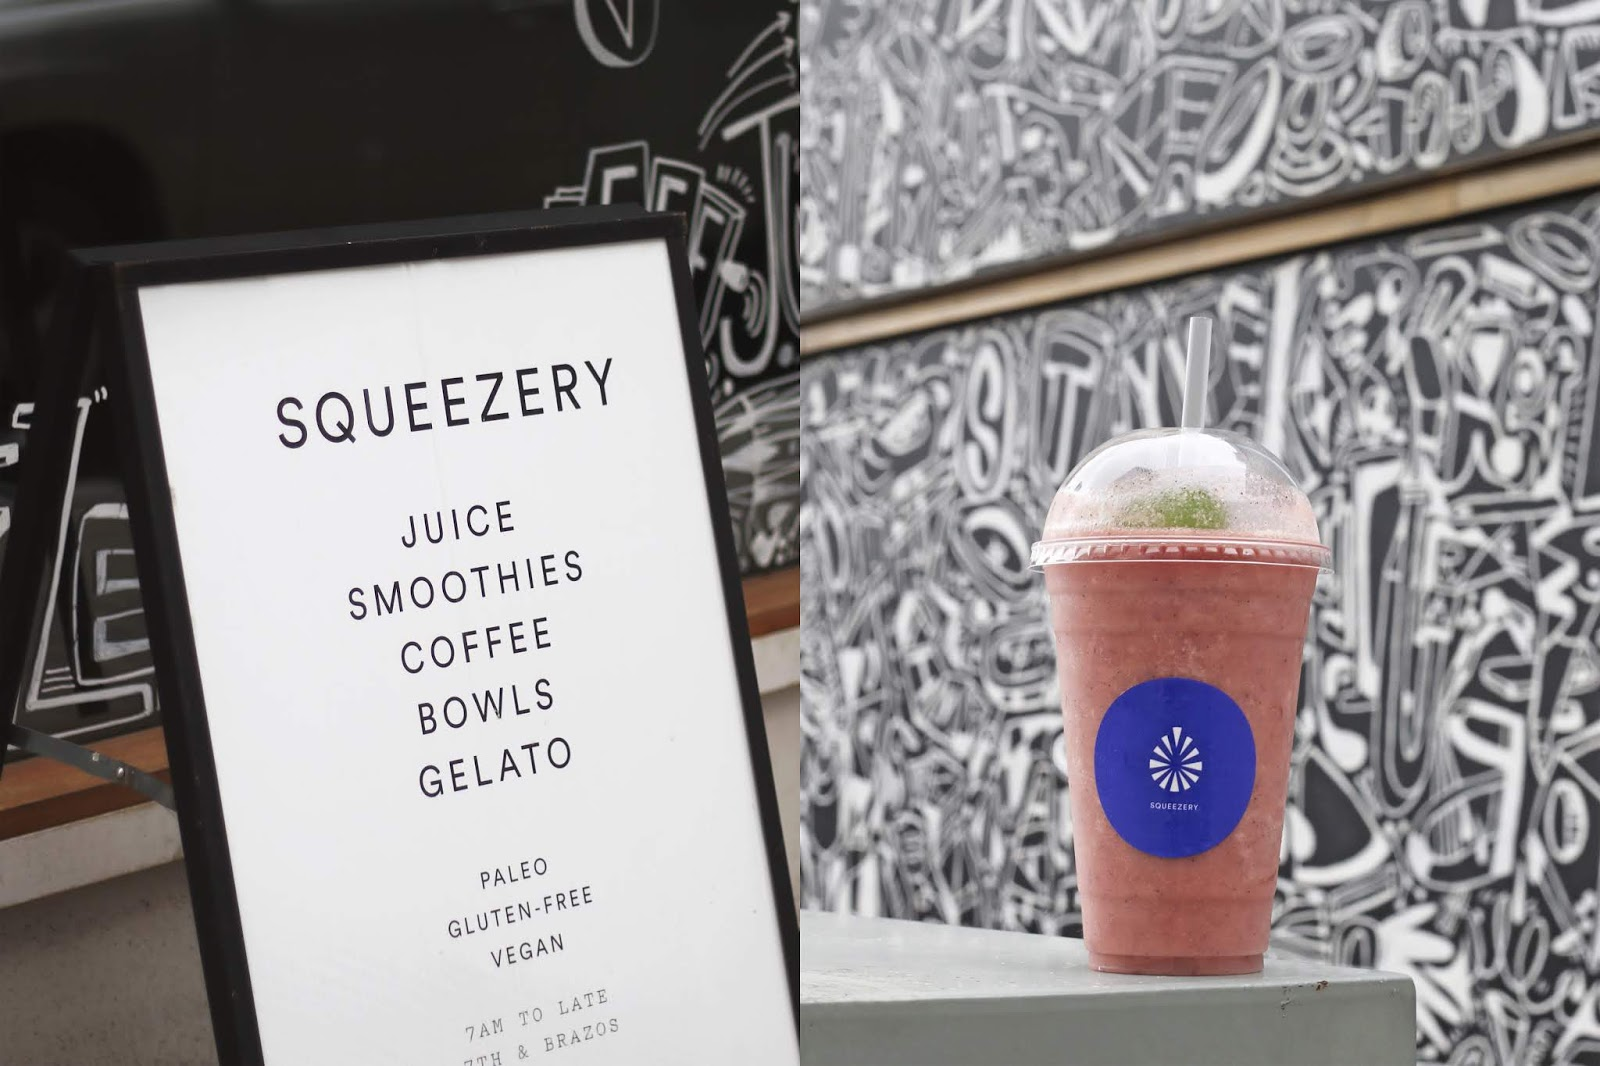 Austin Texas, Austin Smoothies, Best Acai Bowl in Austin, Best Smoothies in Austin, Squeezery Austin Texas Review